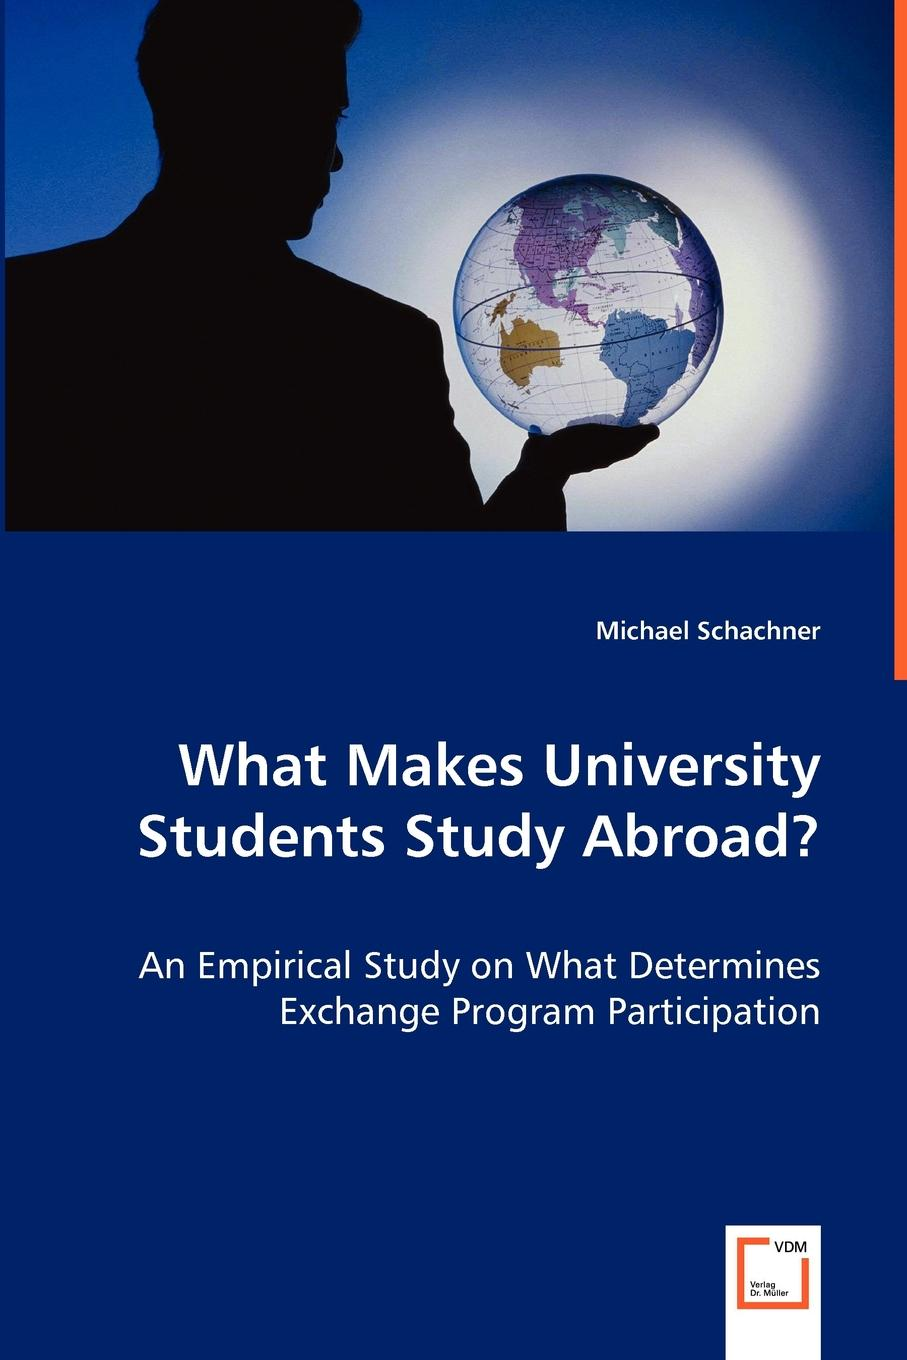 What Makes University Students Study Abroad. - An Empirical Study on What Determines Exchange Program Participation What determines whether a student participates in an exchange program...